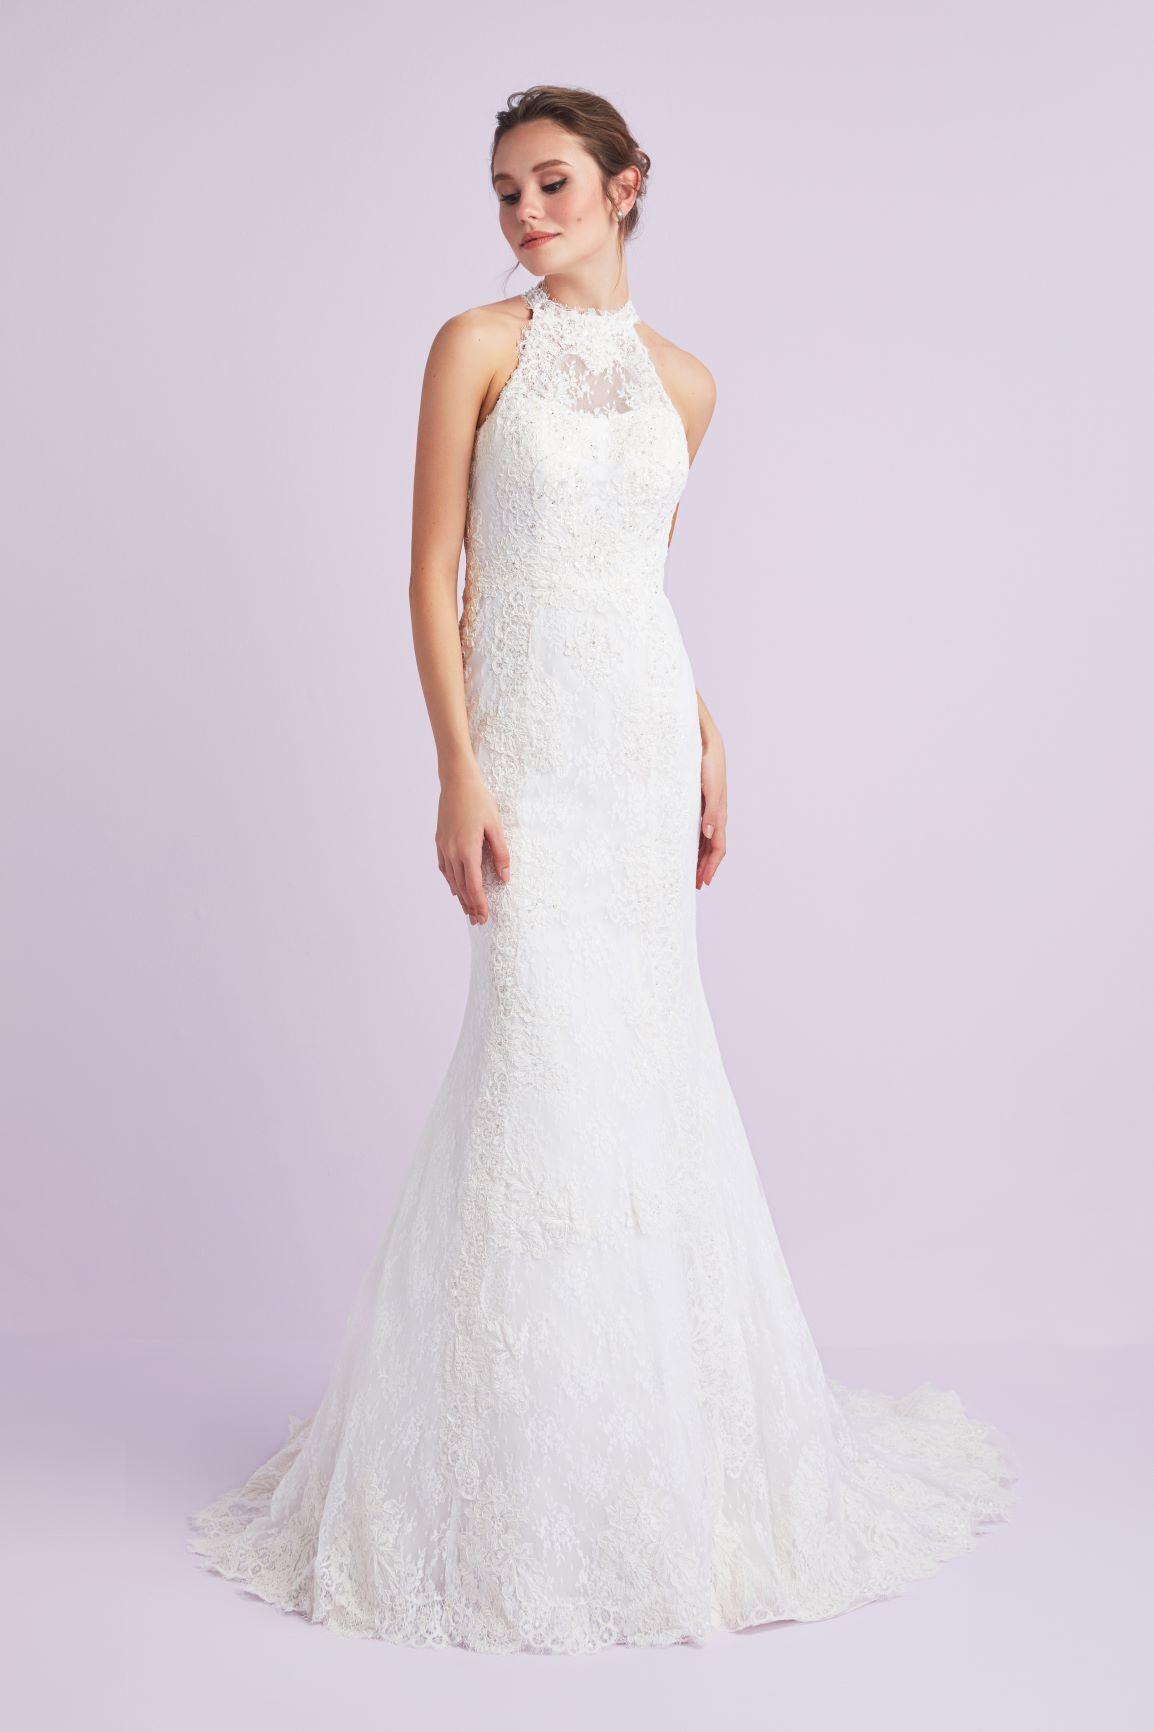 Lace mermaid illusion neckline wedding dress-4XLCWG666